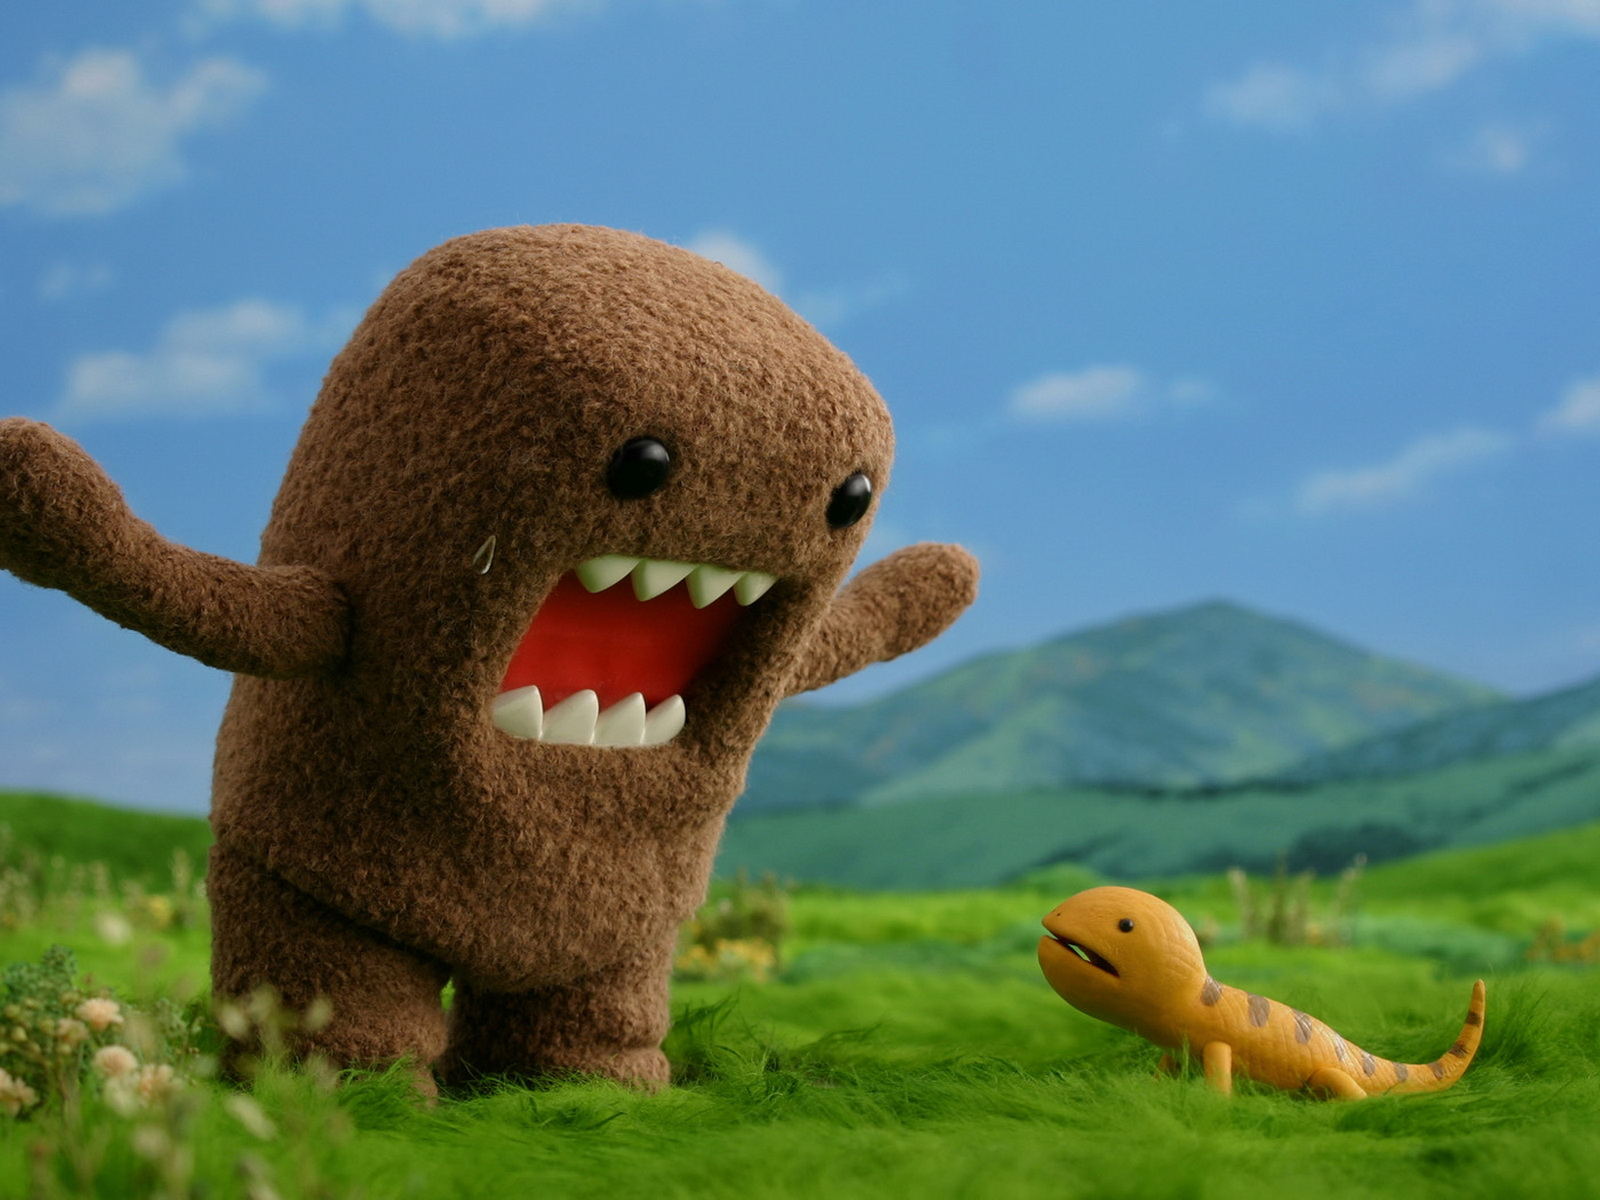 Domo Kun wallpaper with Domo Kun talking with a lizard 1600x1200